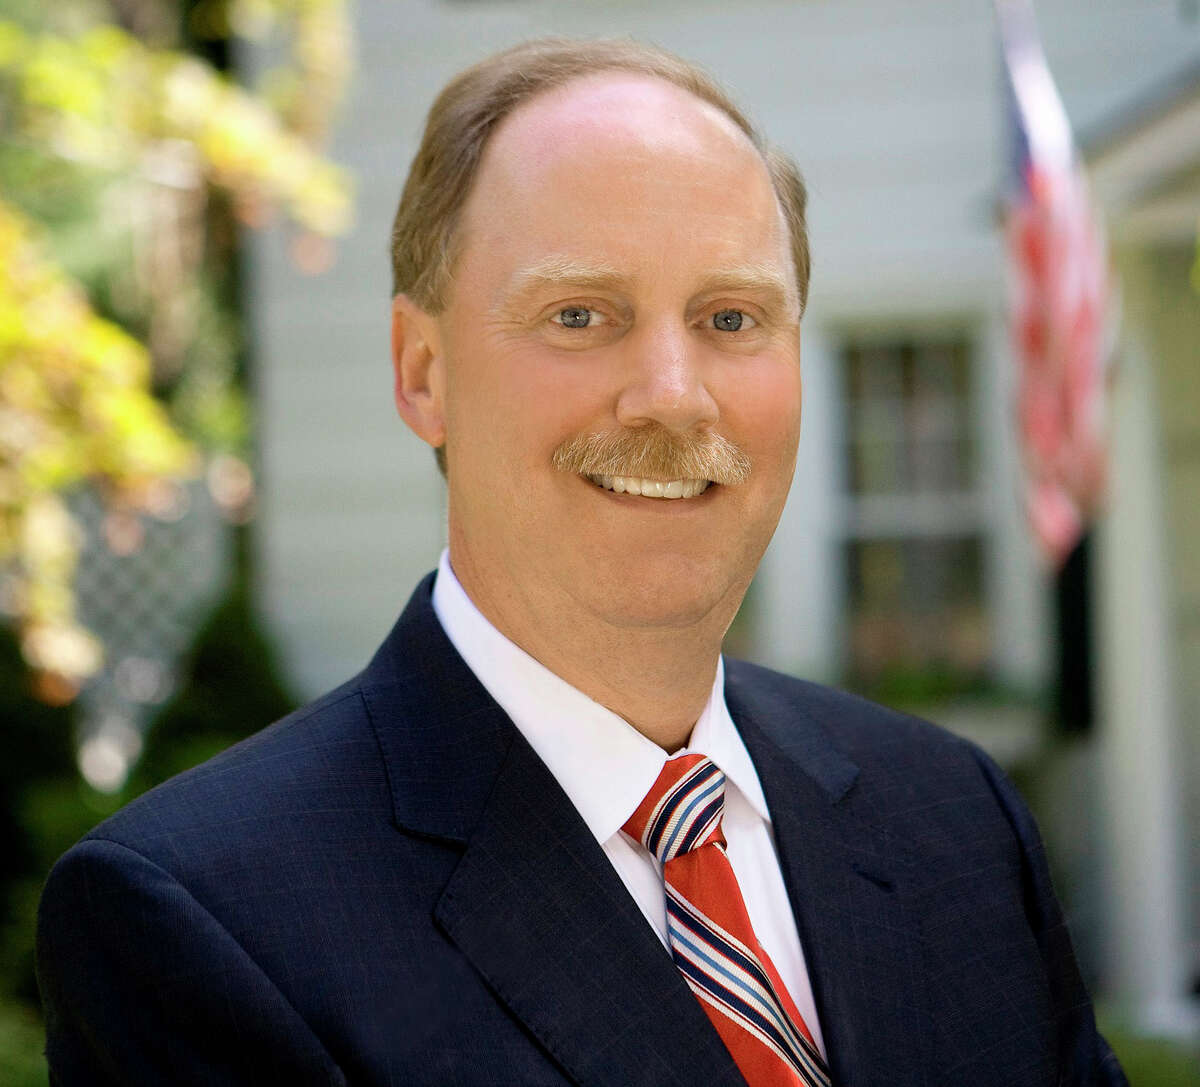 Michael McLachlan is a Republican state senator representing the 24th district of Bethel, Danbury, New Fairfield, and Sherman.